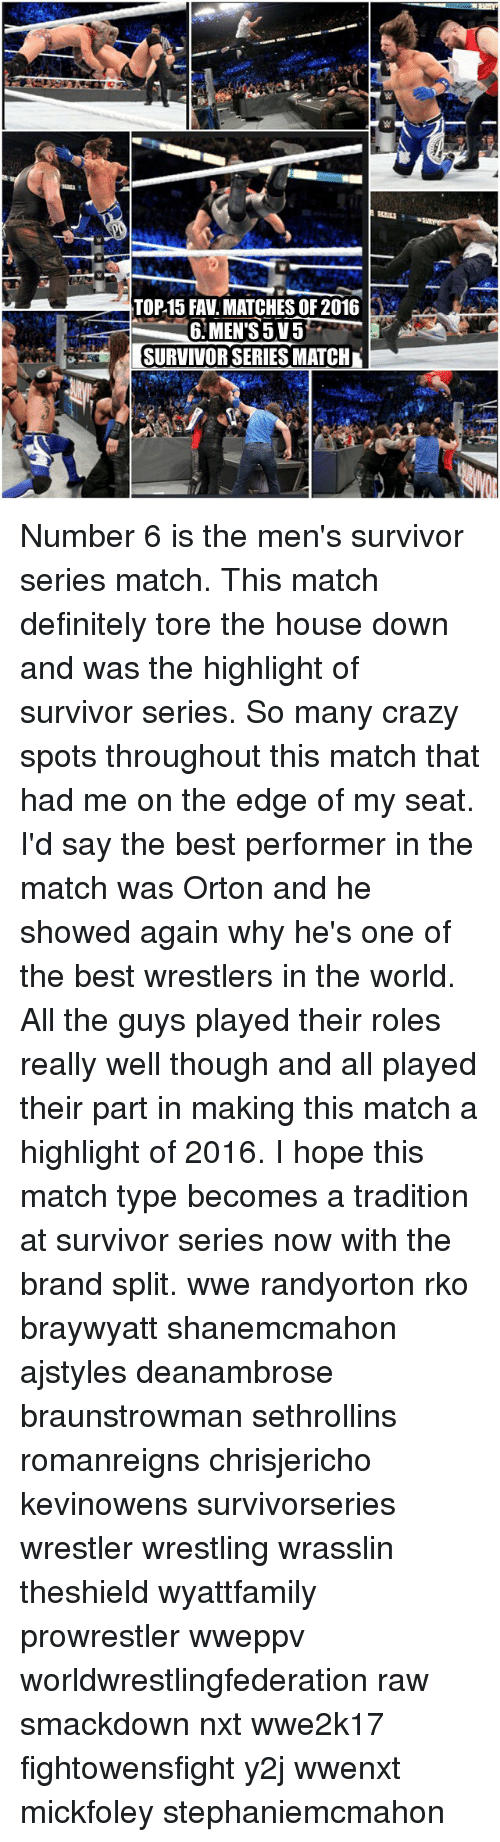 Definitely, Memes, and Wrestling: TOP15 FAV MATCHES OF 2016  6 MENTS 5V5  SURVIVOR SERIES MATCH Number 6 is the men's survivor series match. This match definitely tore the house down and was the highlight of survivor series. So many crazy spots throughout this match that had me on the edge of my seat. I'd say the best performer in the match was Orton and he showed again why he's one of the best wrestlers in the world. All the guys played their roles really well though and all played their part in making this match a highlight of 2016. I hope this match type becomes a tradition at survivor series now with the brand split. wwe randyorton rko braywyatt shanemcmahon ajstyles deanambrose braunstrowman sethrollins romanreigns chrisjericho kevinowens survivorseries wrestler wrestling wrasslin theshield wyattfamily prowrestler wweppv worldwrestlingfederation raw smackdown nxt wwe2k17 fightowensfight y2j wwenxt mickfoley stephaniemcmahon